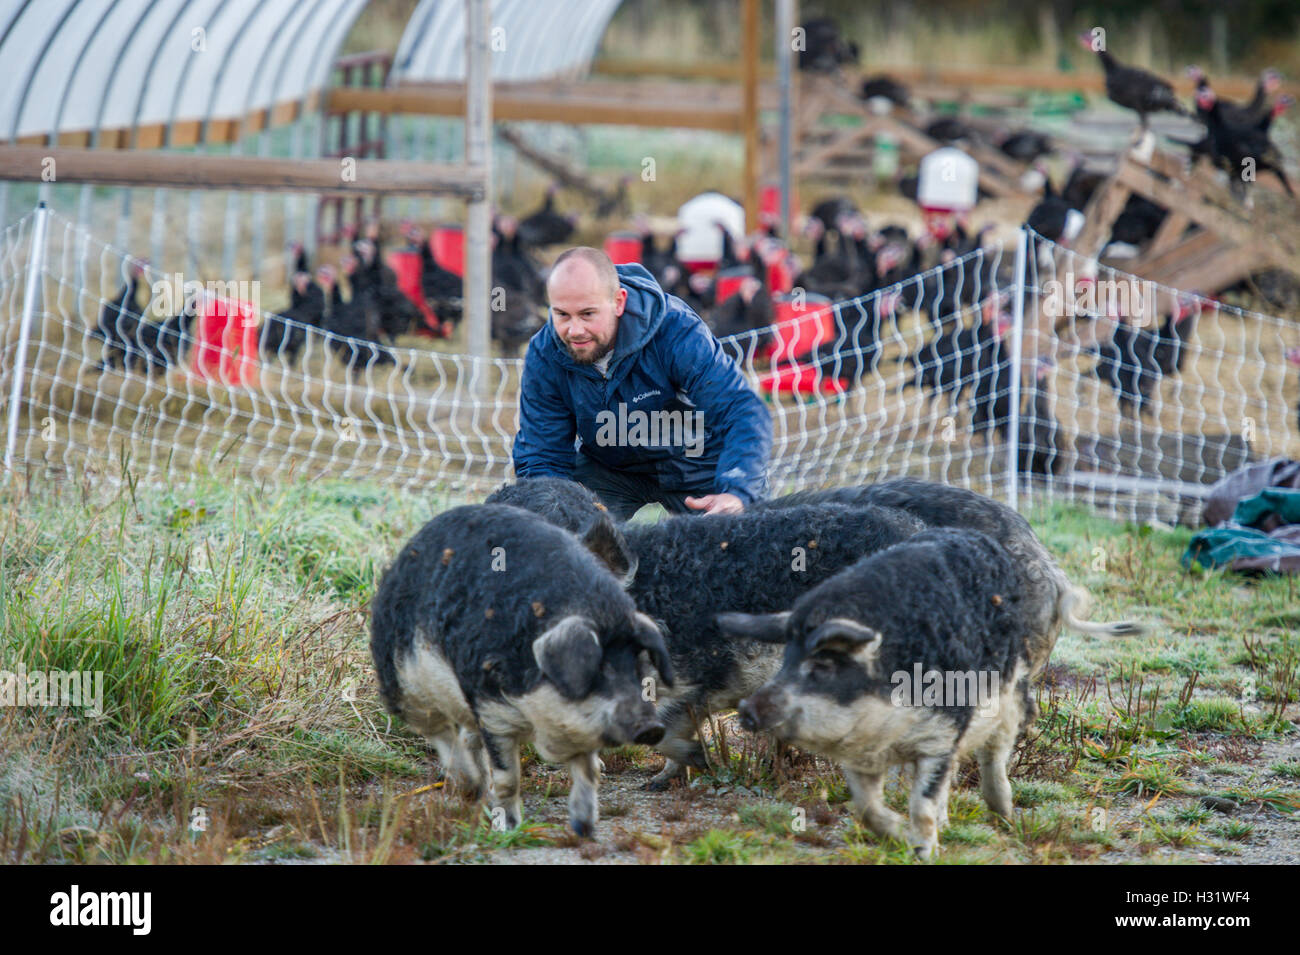 Mangalica Pigs with a farmer in Freeport, Maine. - Stock Image